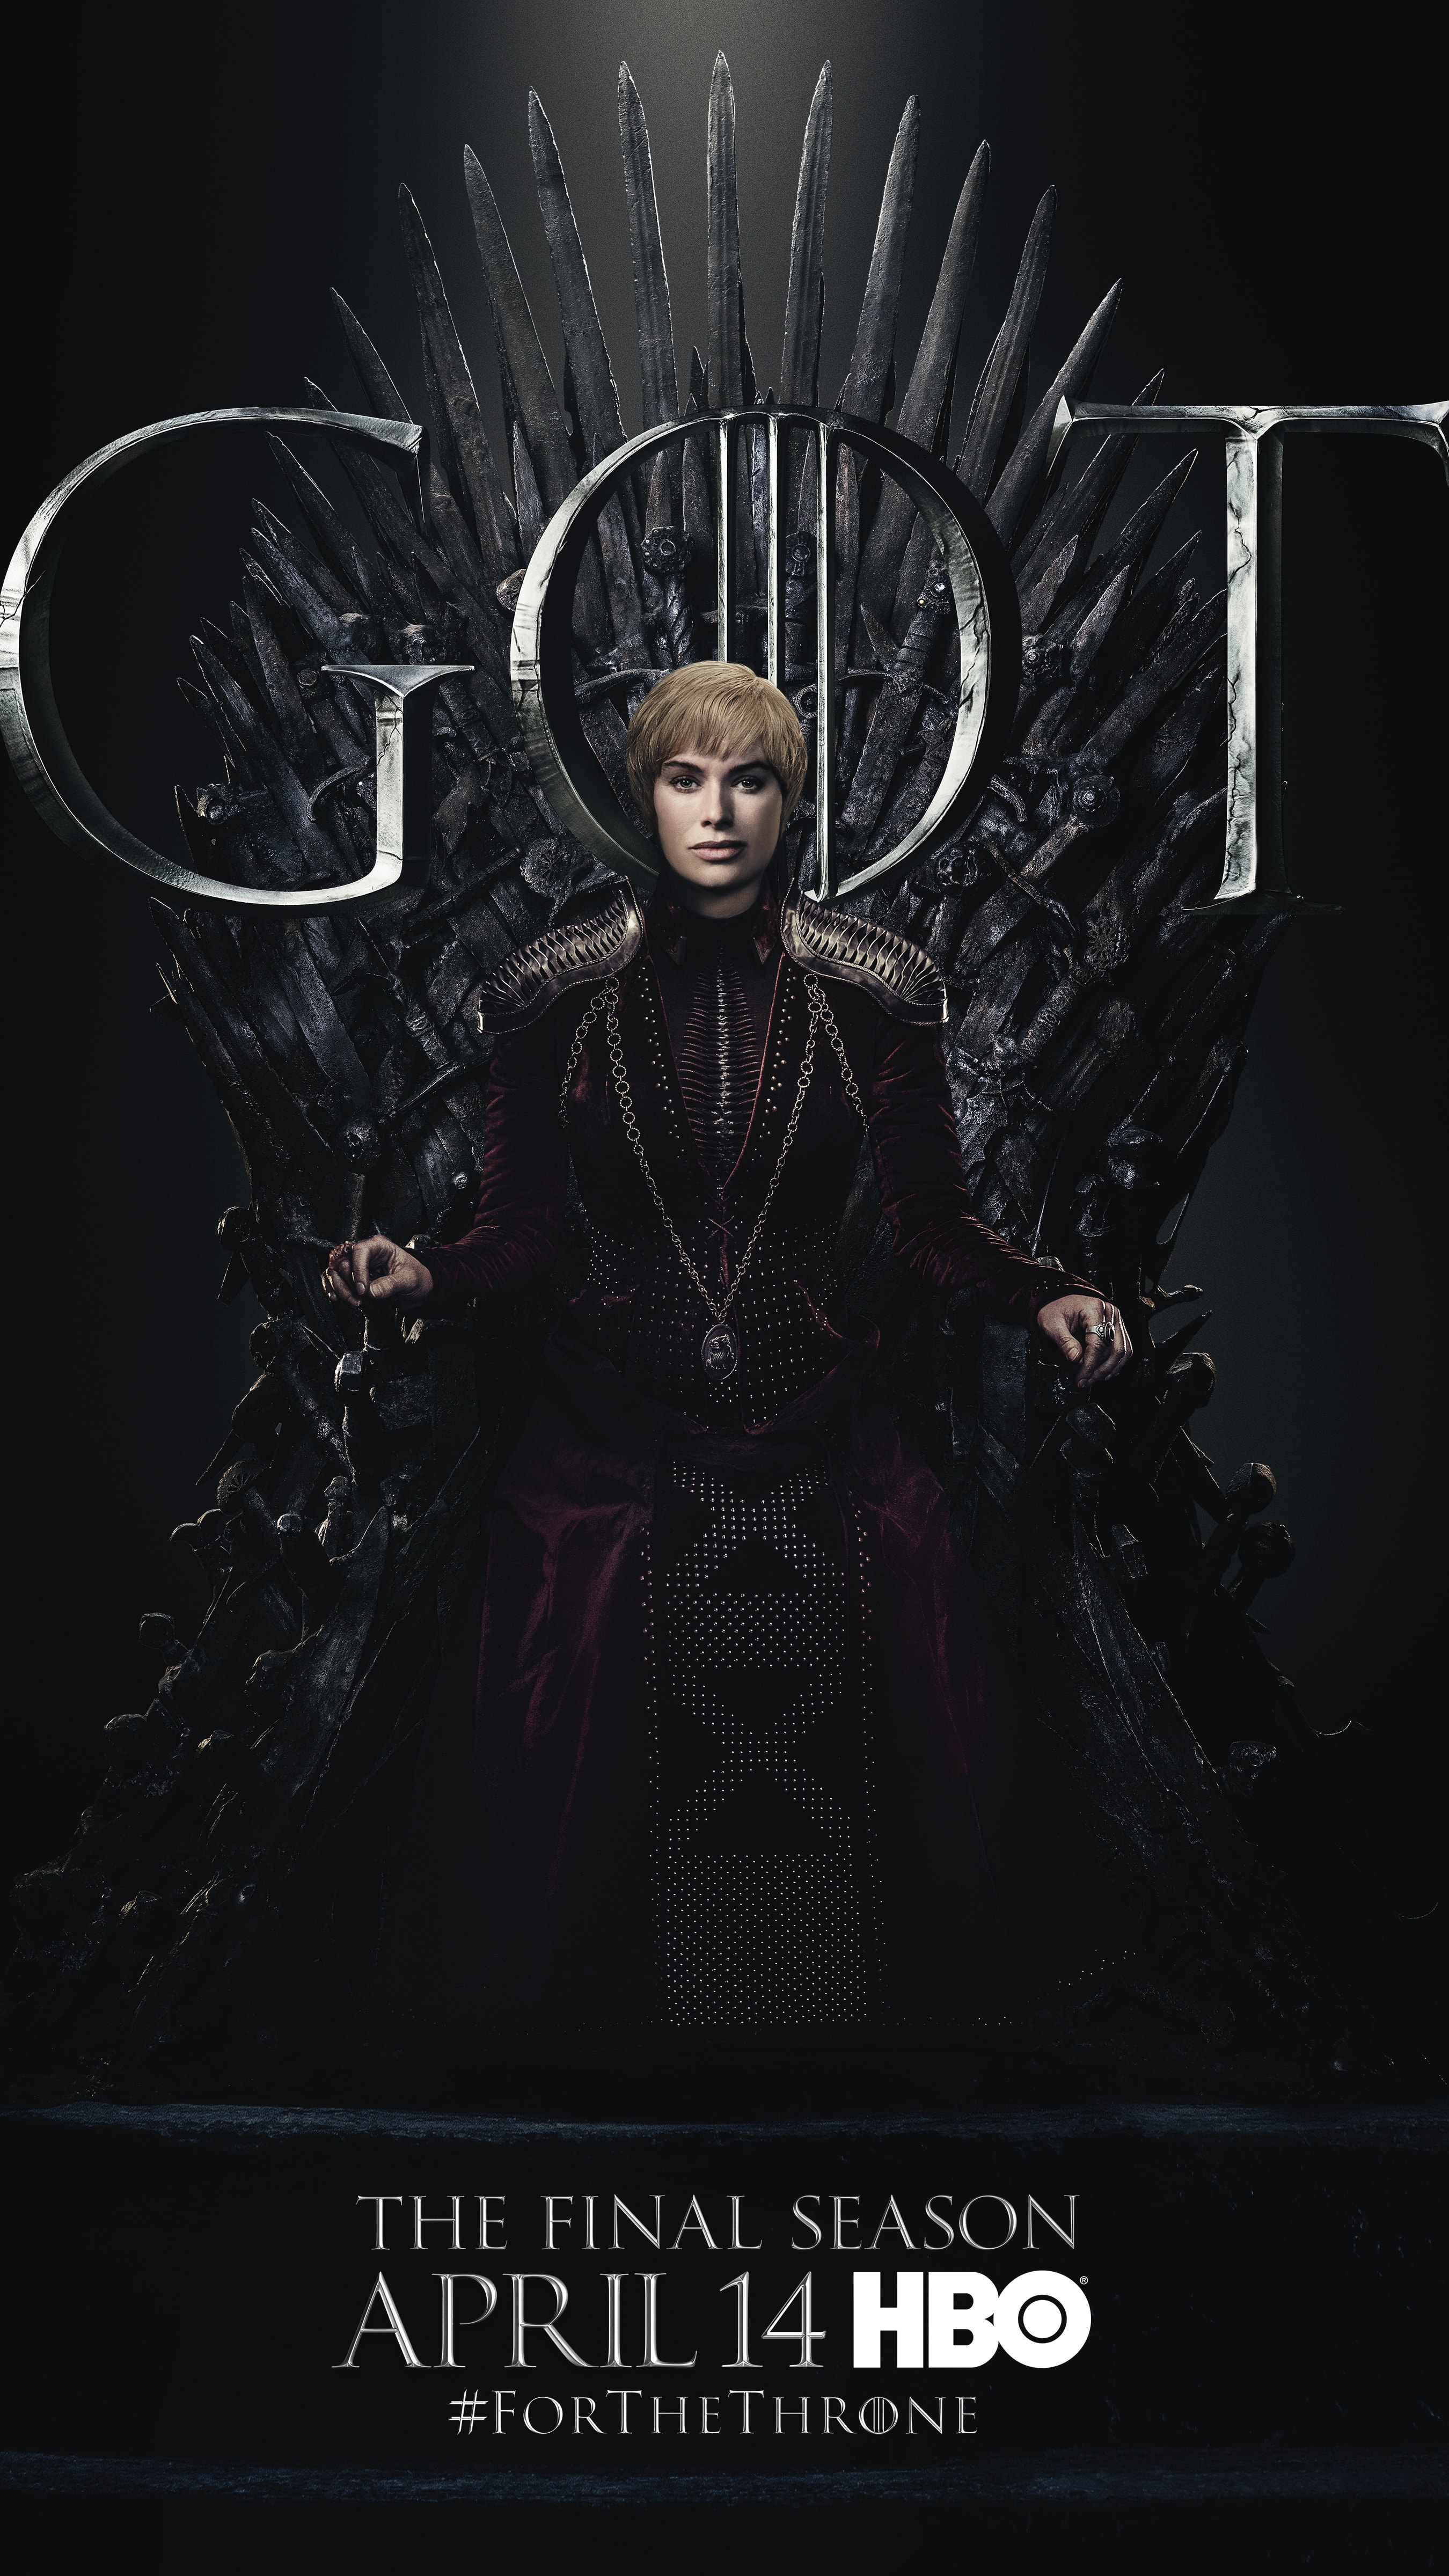 Character Posters (and Twitter Emojis) for Game of Thrones Season 8